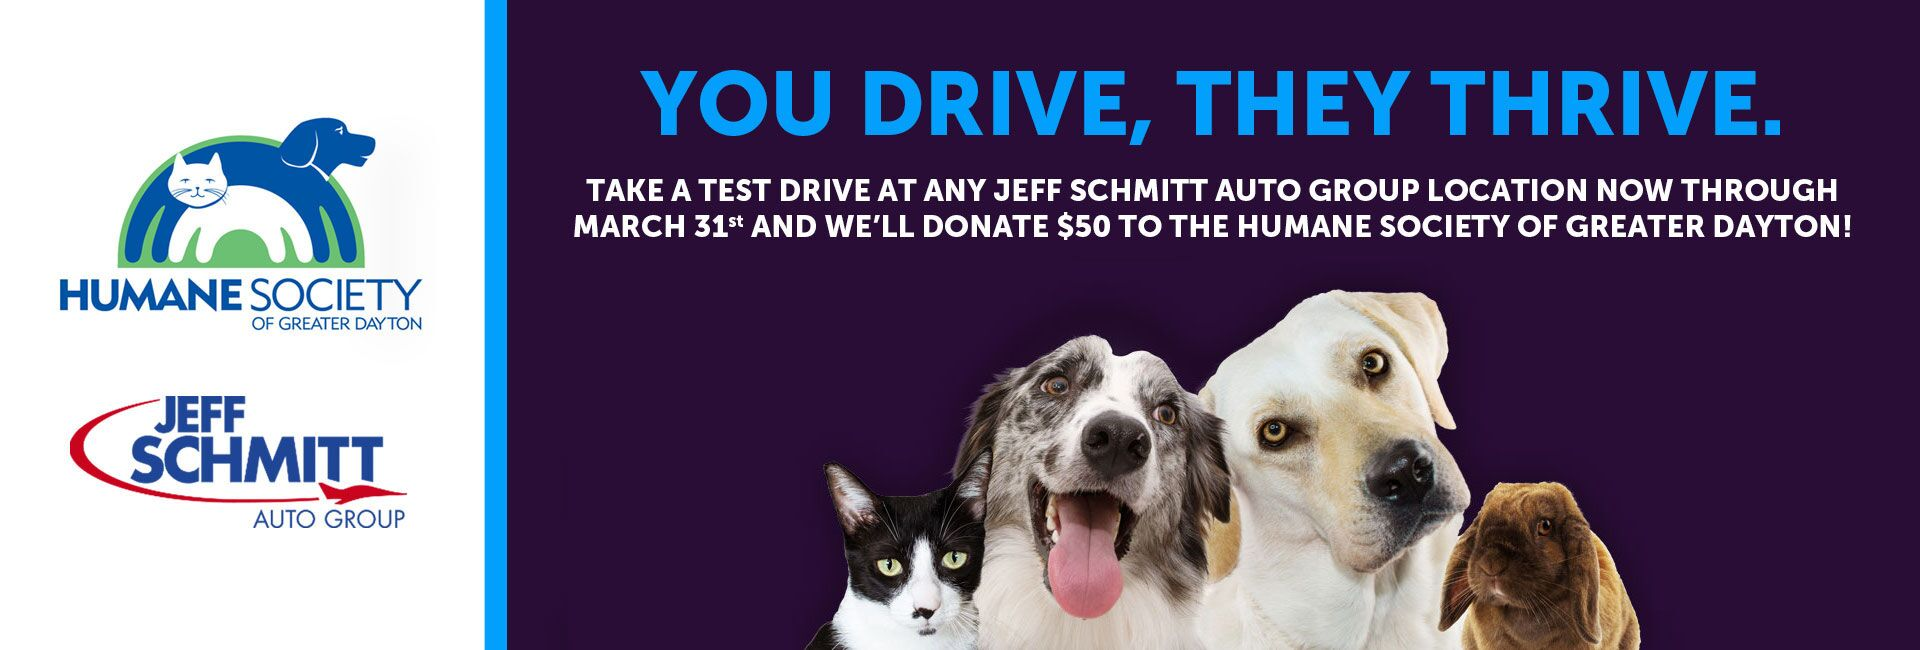 You Drive, They Thrive Event for the Humane Society in Dayton OH.